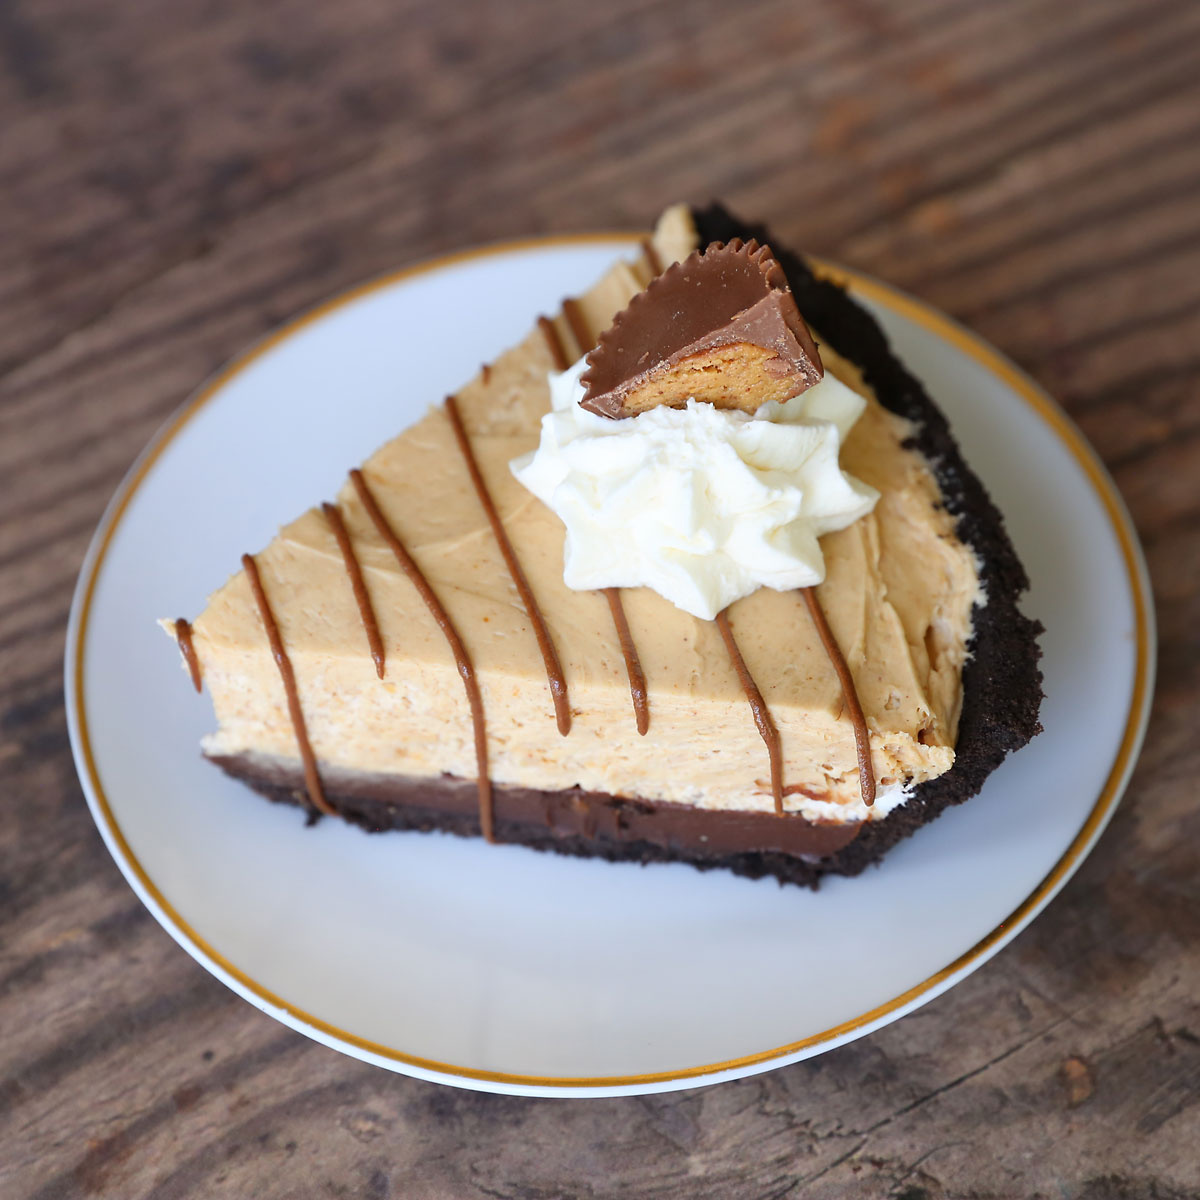 EASY 5 Ingredient Chocolate Peanut Butter Pie